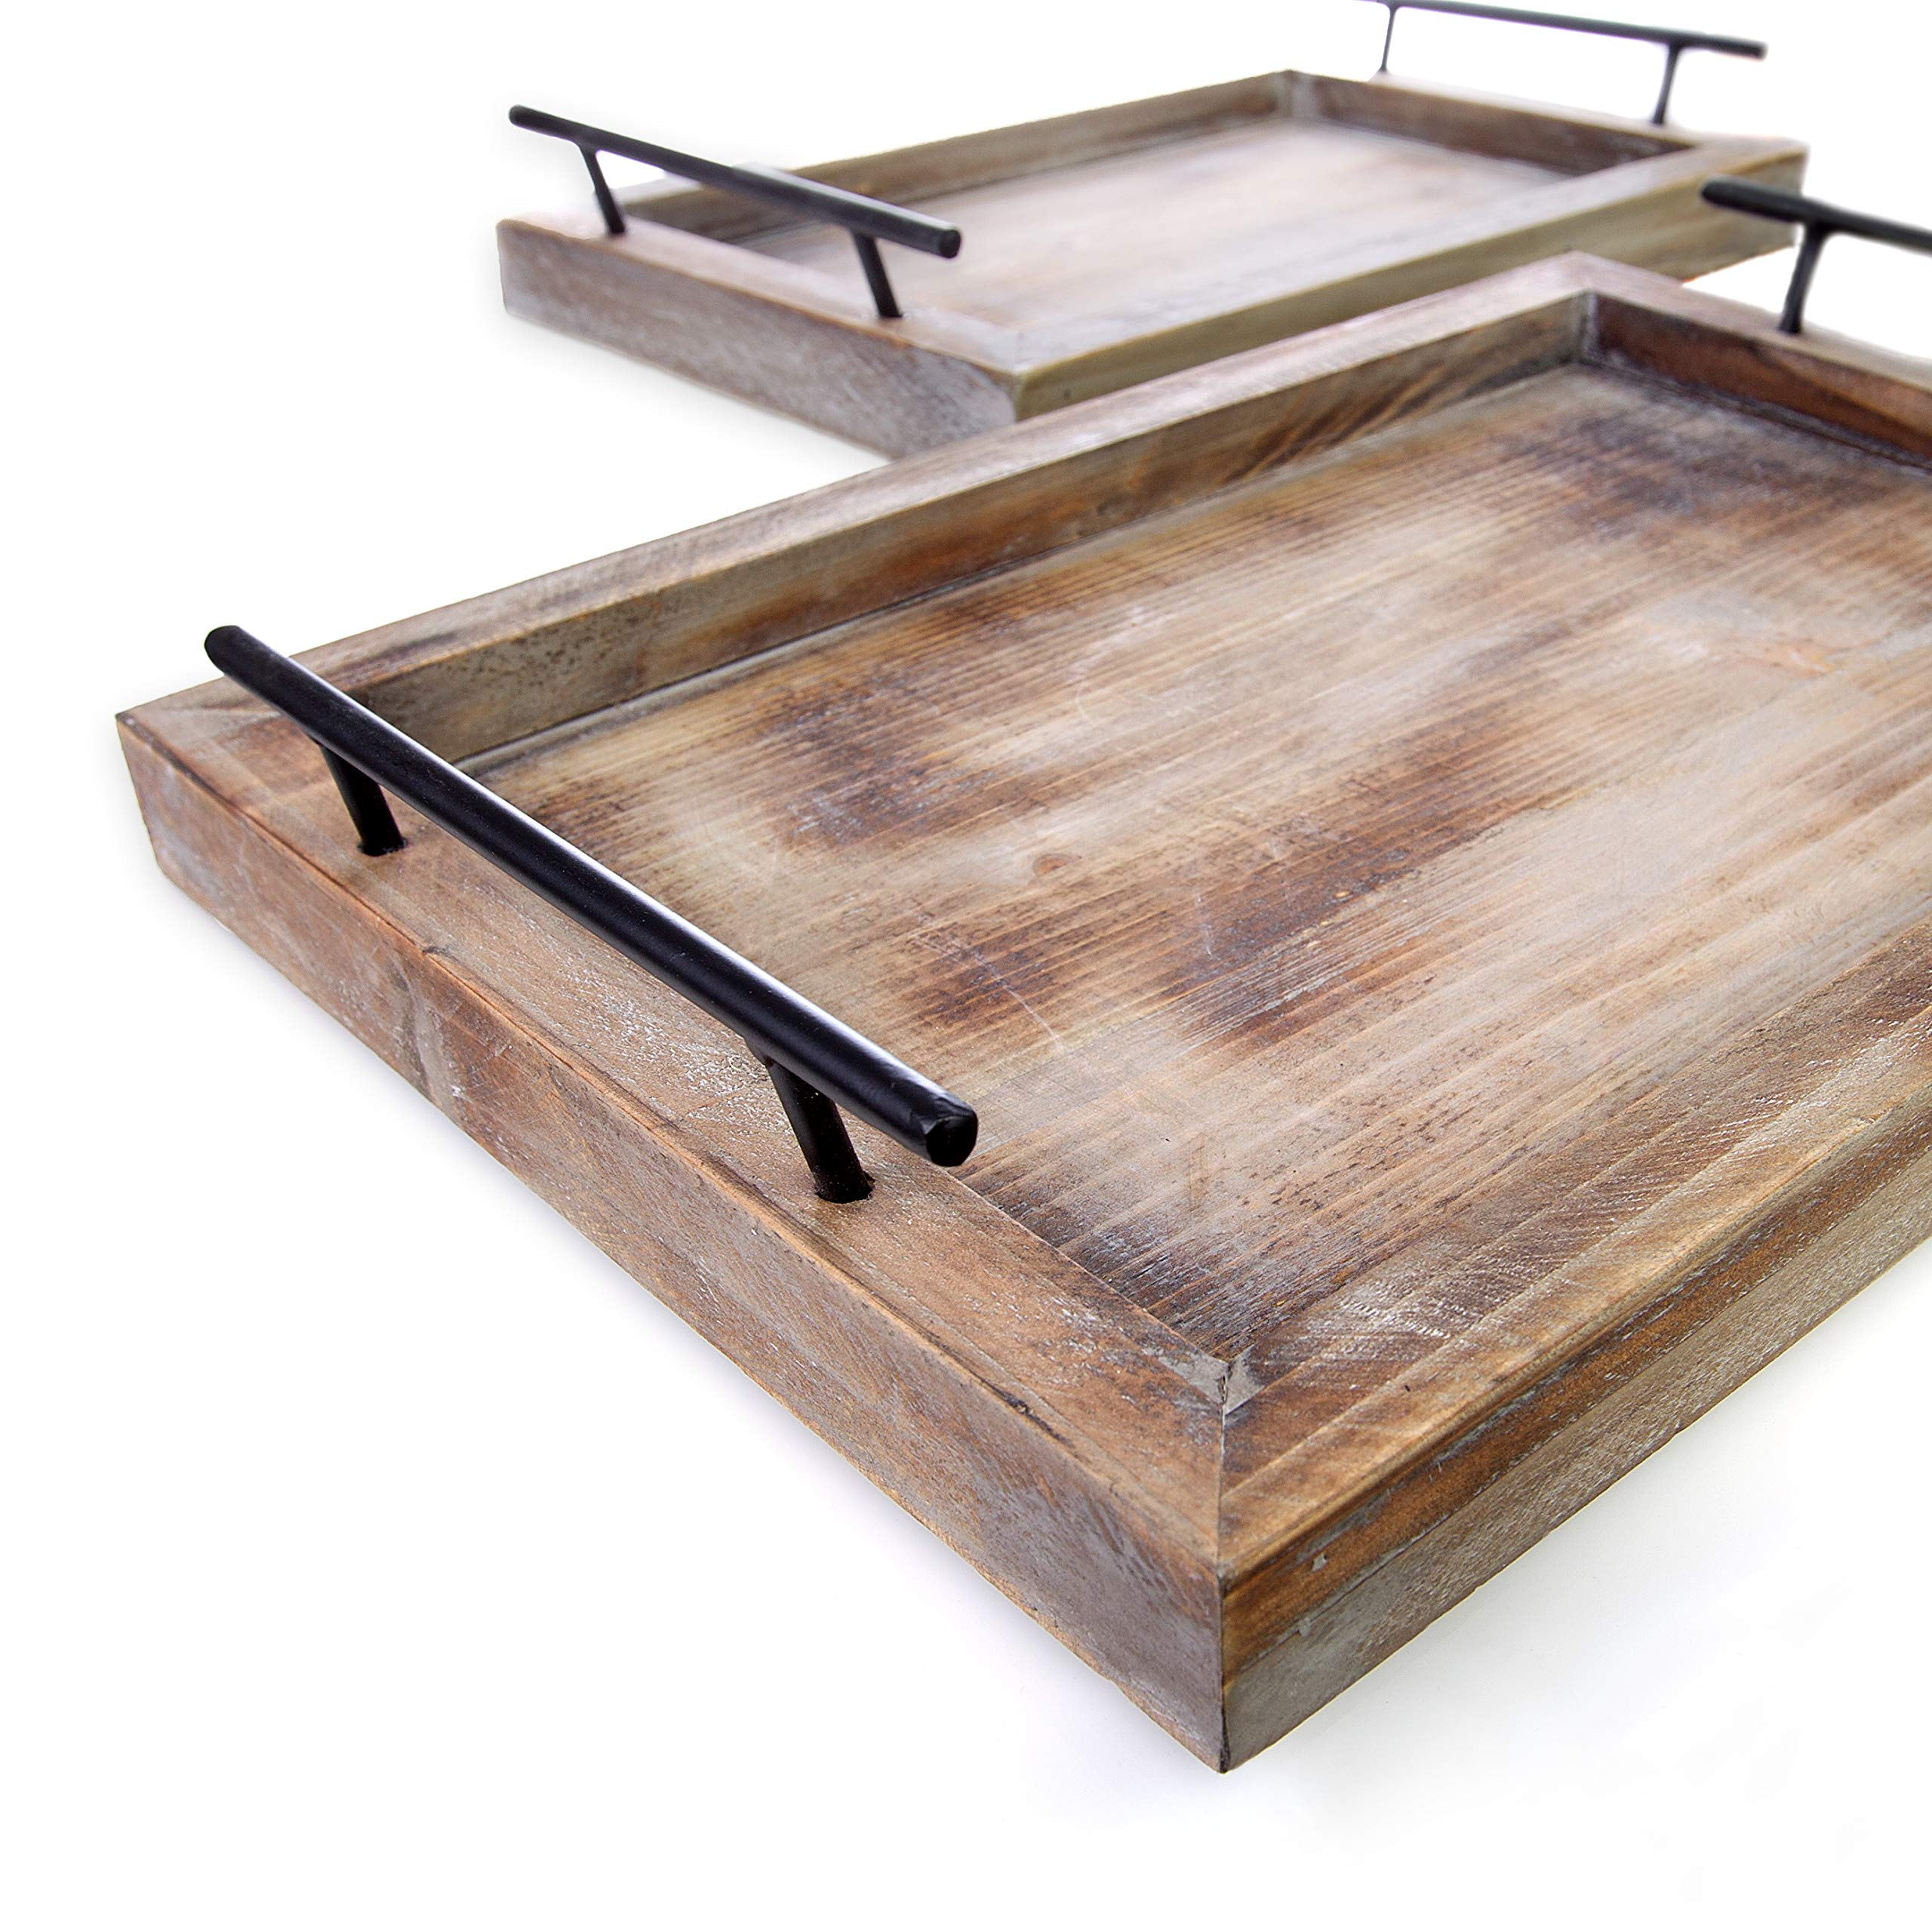 Bison Home Goods Wooden Serving Trays with Handles (2 Pc. Set) Rustic, Farmhouse Wood Butler Platters | Serve Breakfast, Appetizer, Coffee, Bar, and Food | Party or Display Use by Bison Home Goods